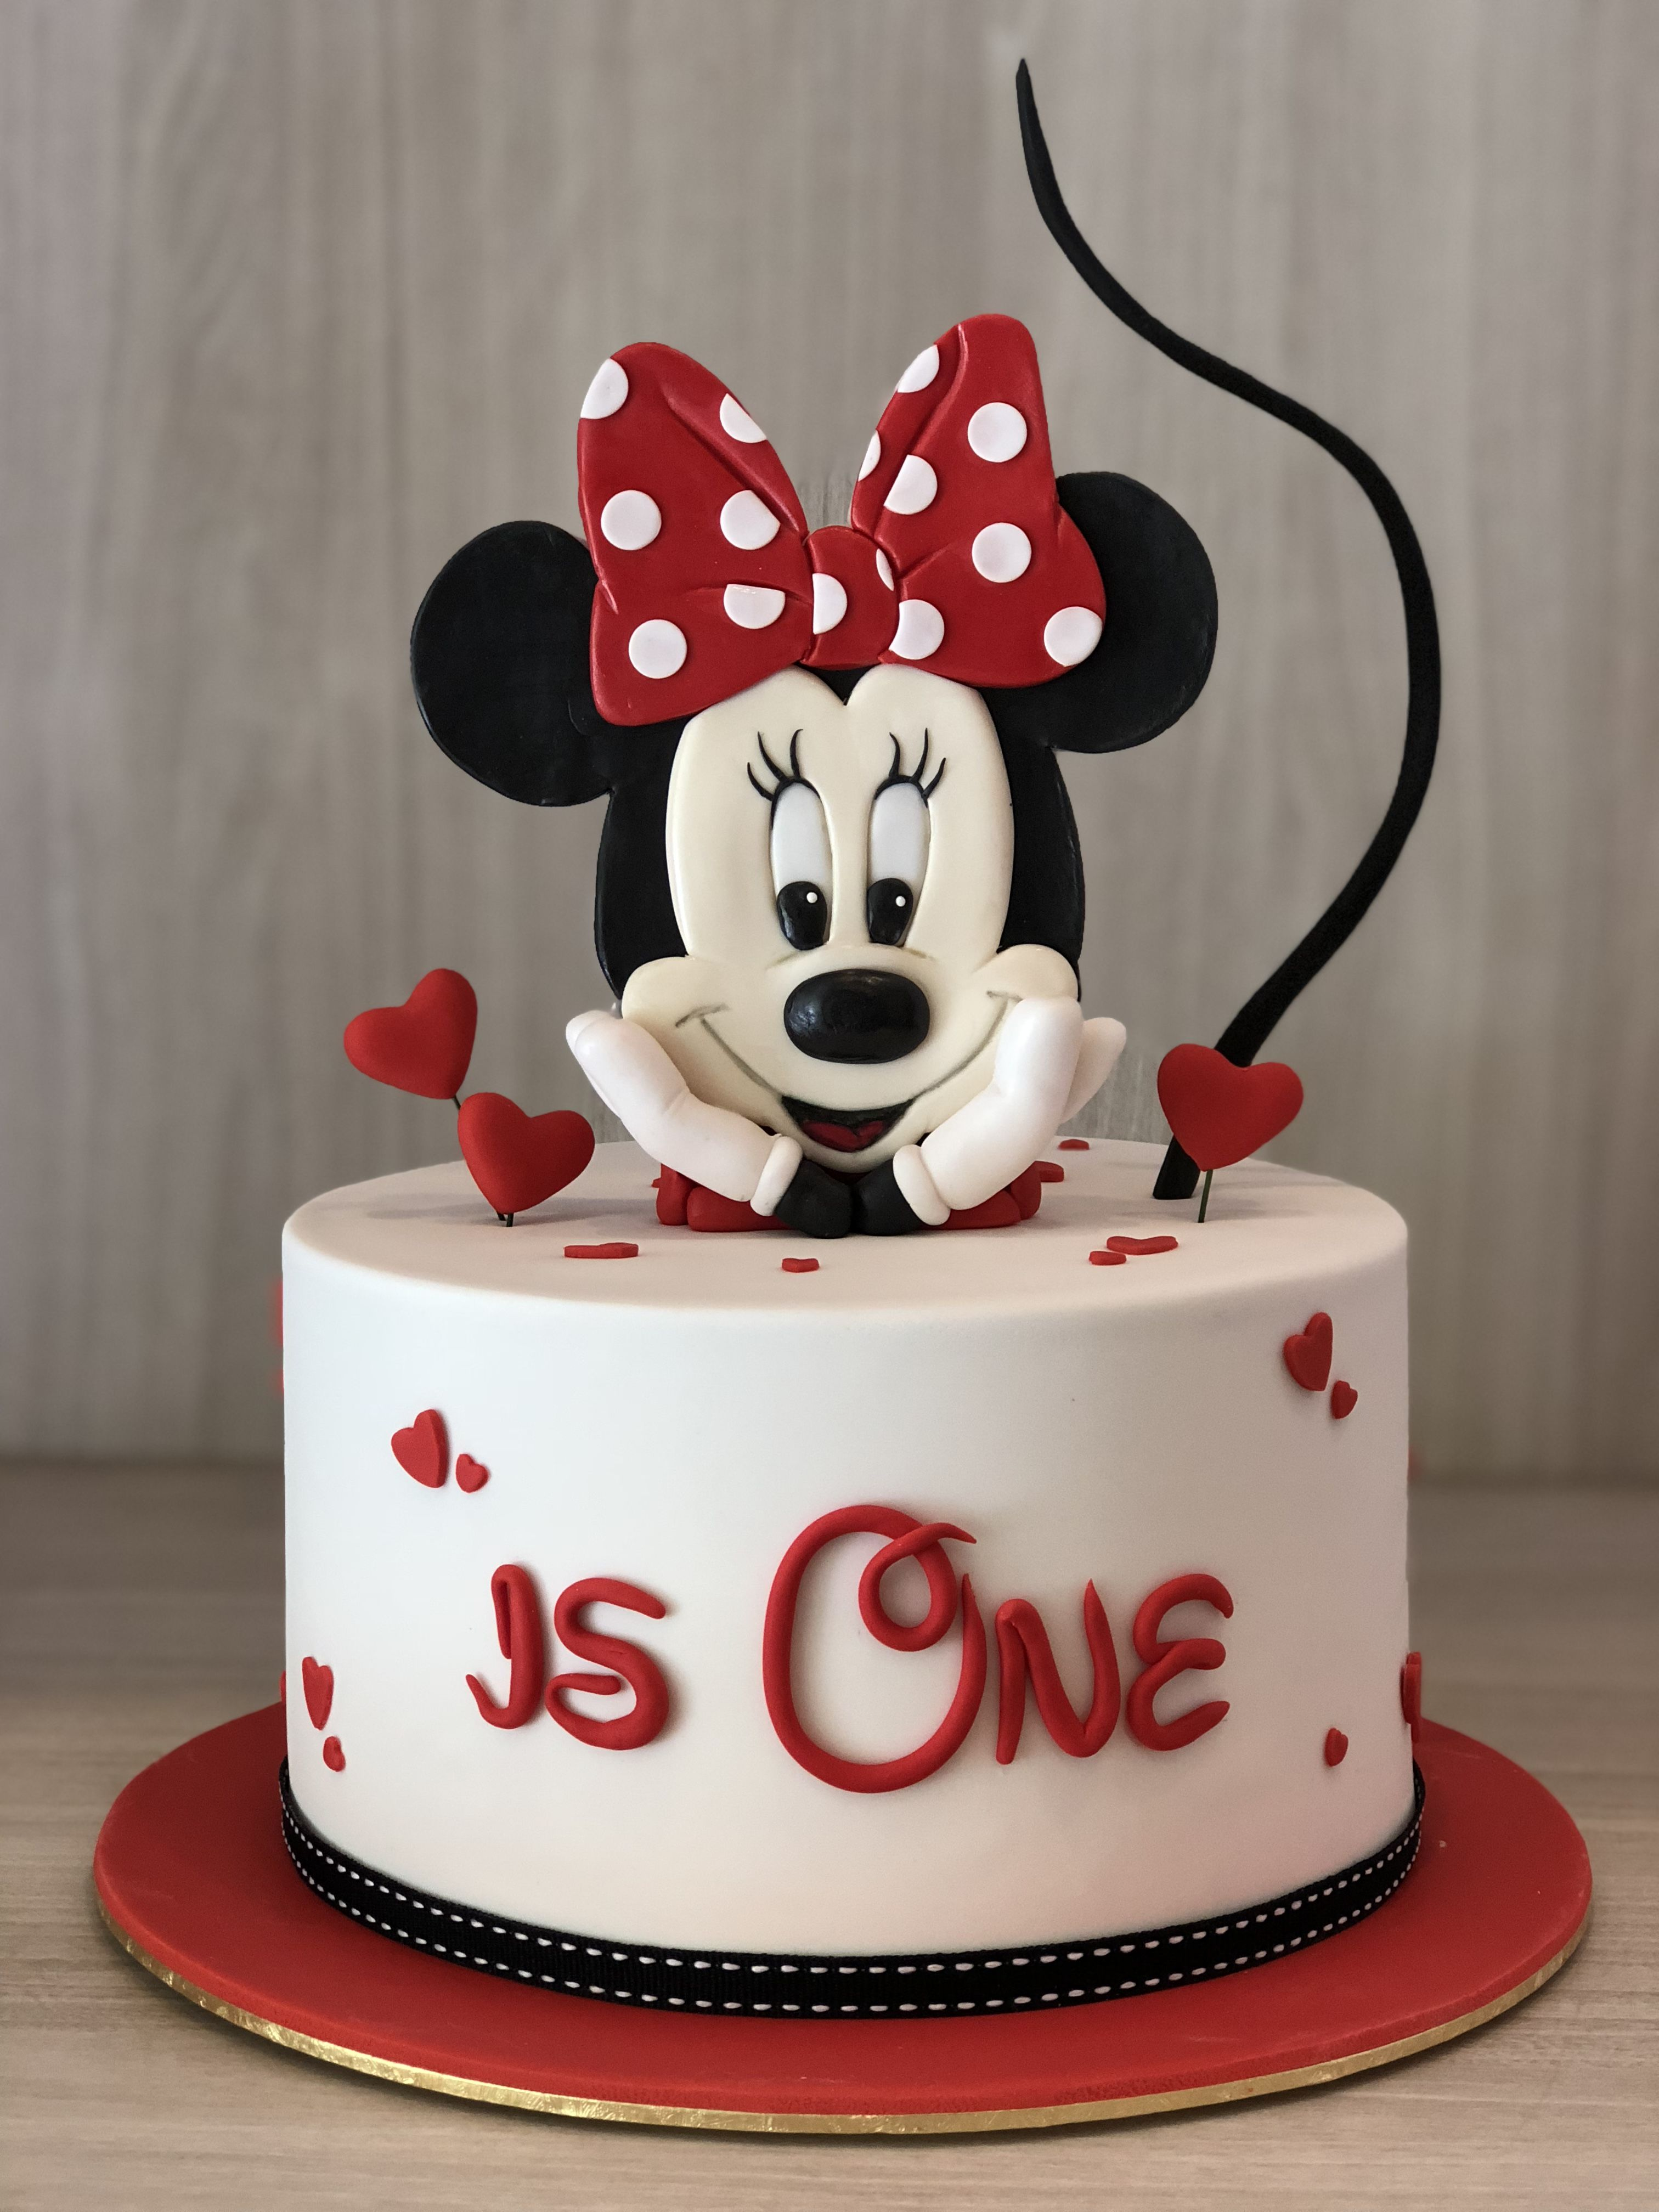 Superb Minnie Mouse Cake Minnie Mouse Birthday Cakes Mickey Mouse Funny Birthday Cards Online Overcheapnameinfo